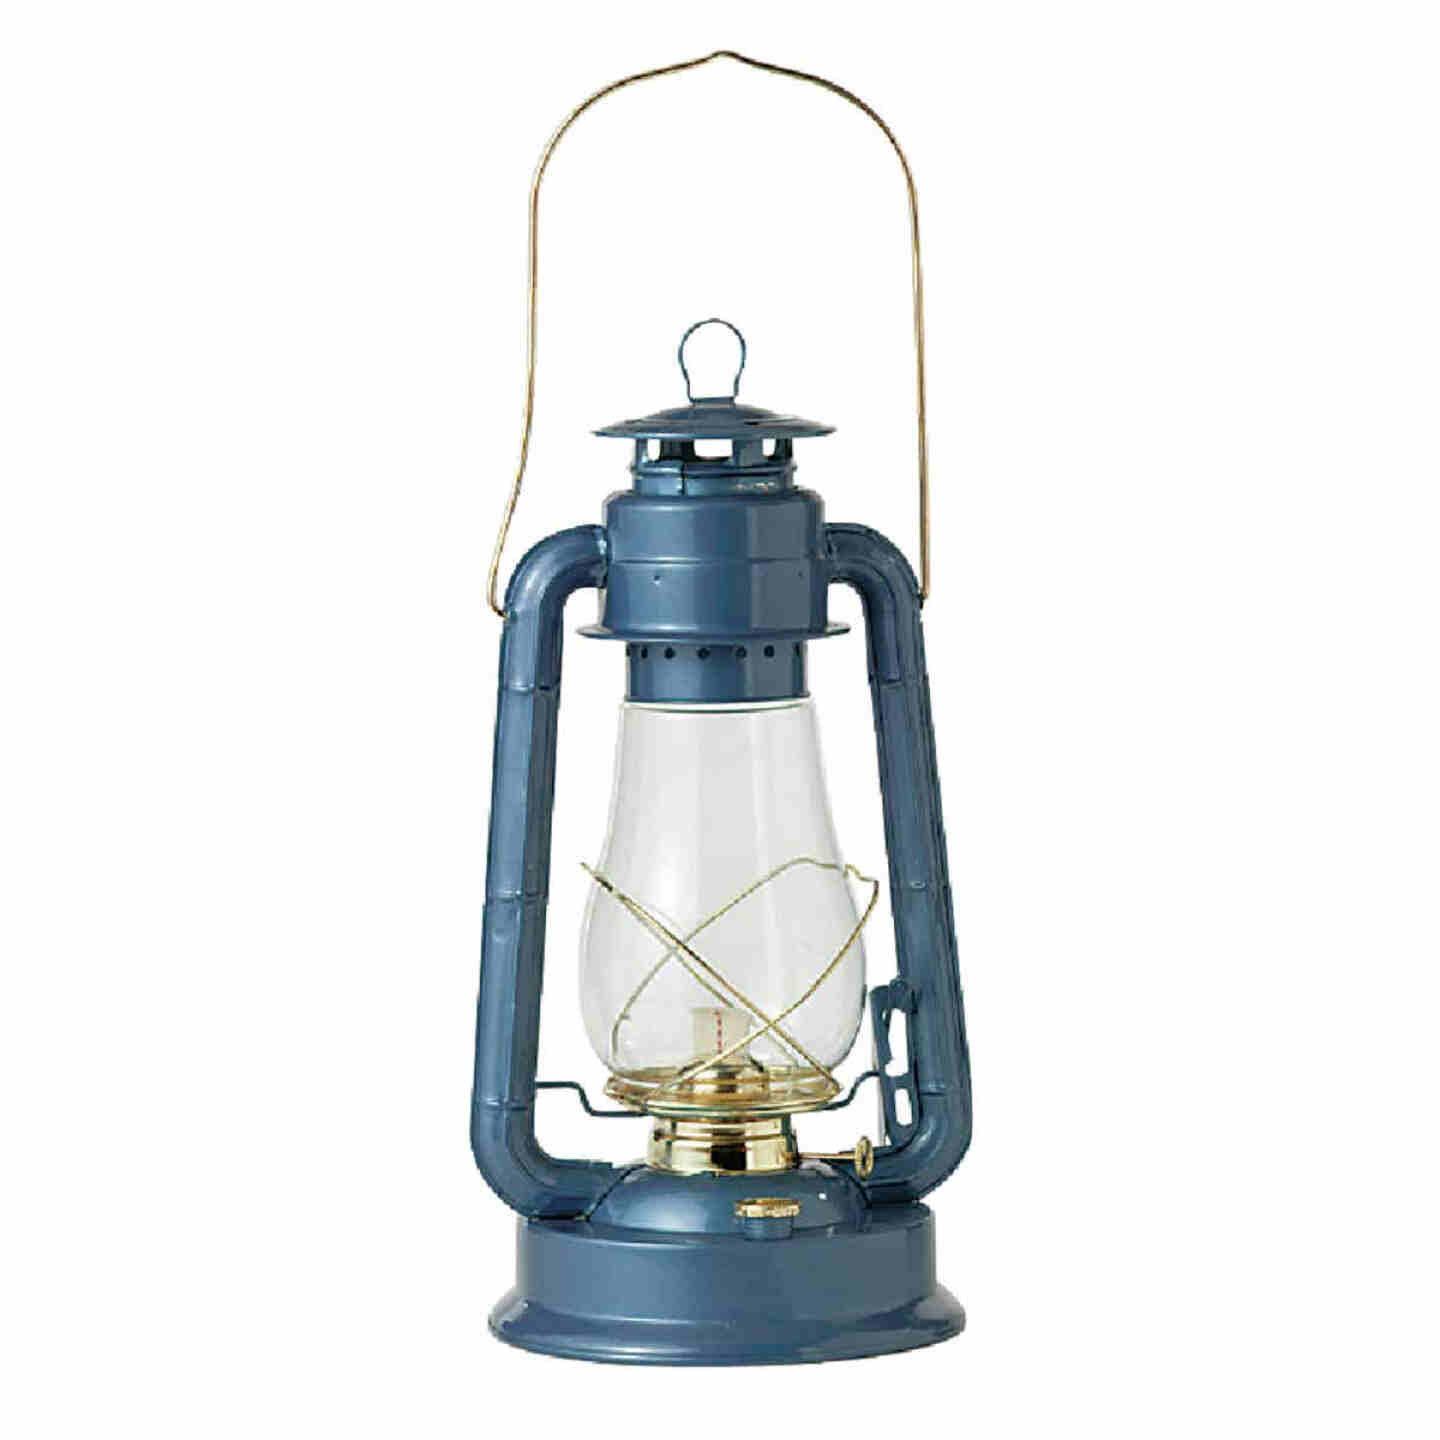 21st Century Supreme 15 In. Blue Liquid Fuel Lantern Image 1